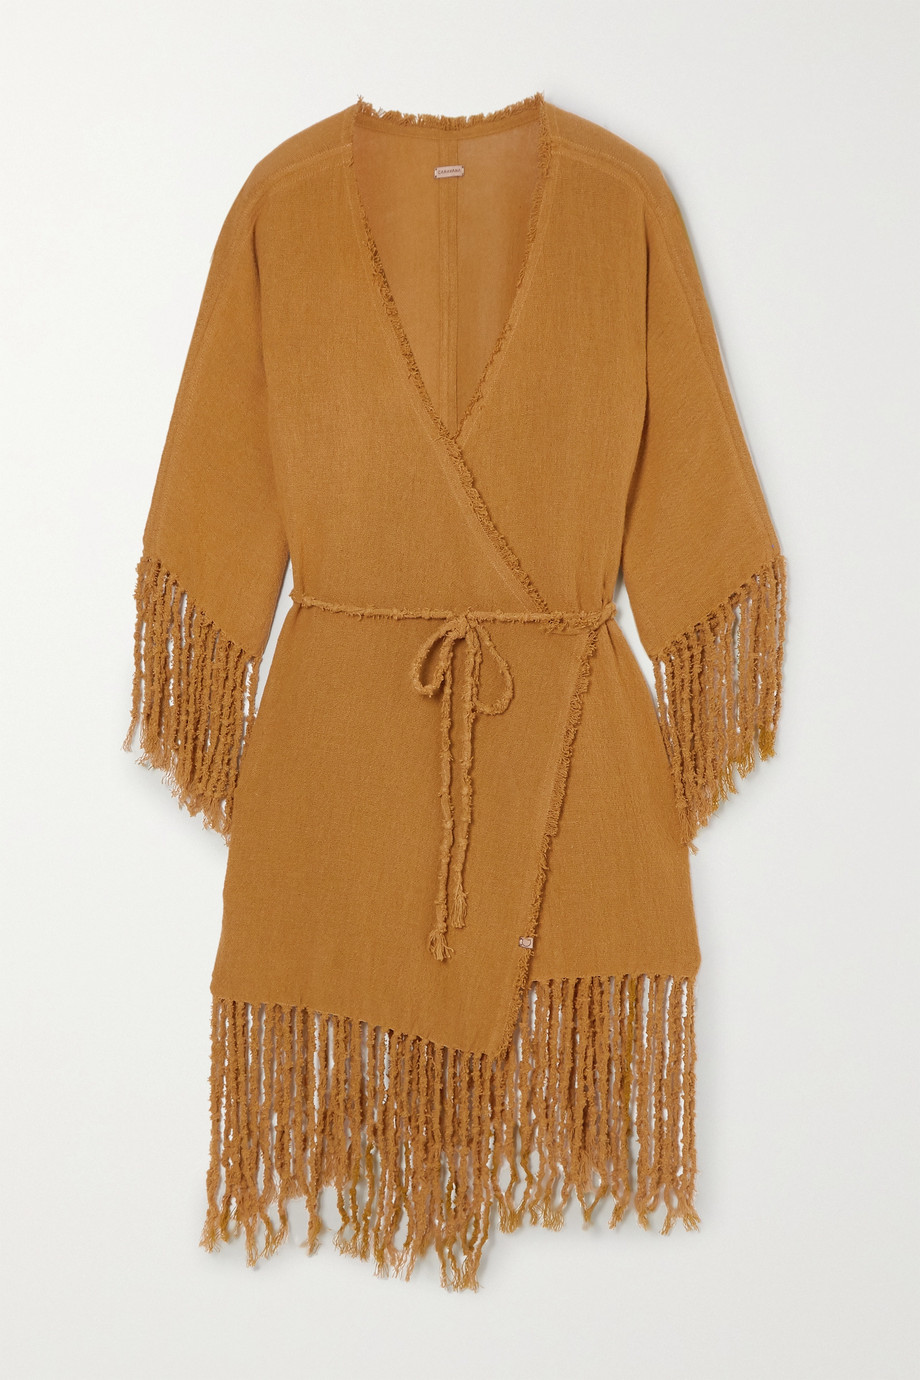 Caravana + NET SUSTAIN Tsuuy fringed cotton-gauze dress